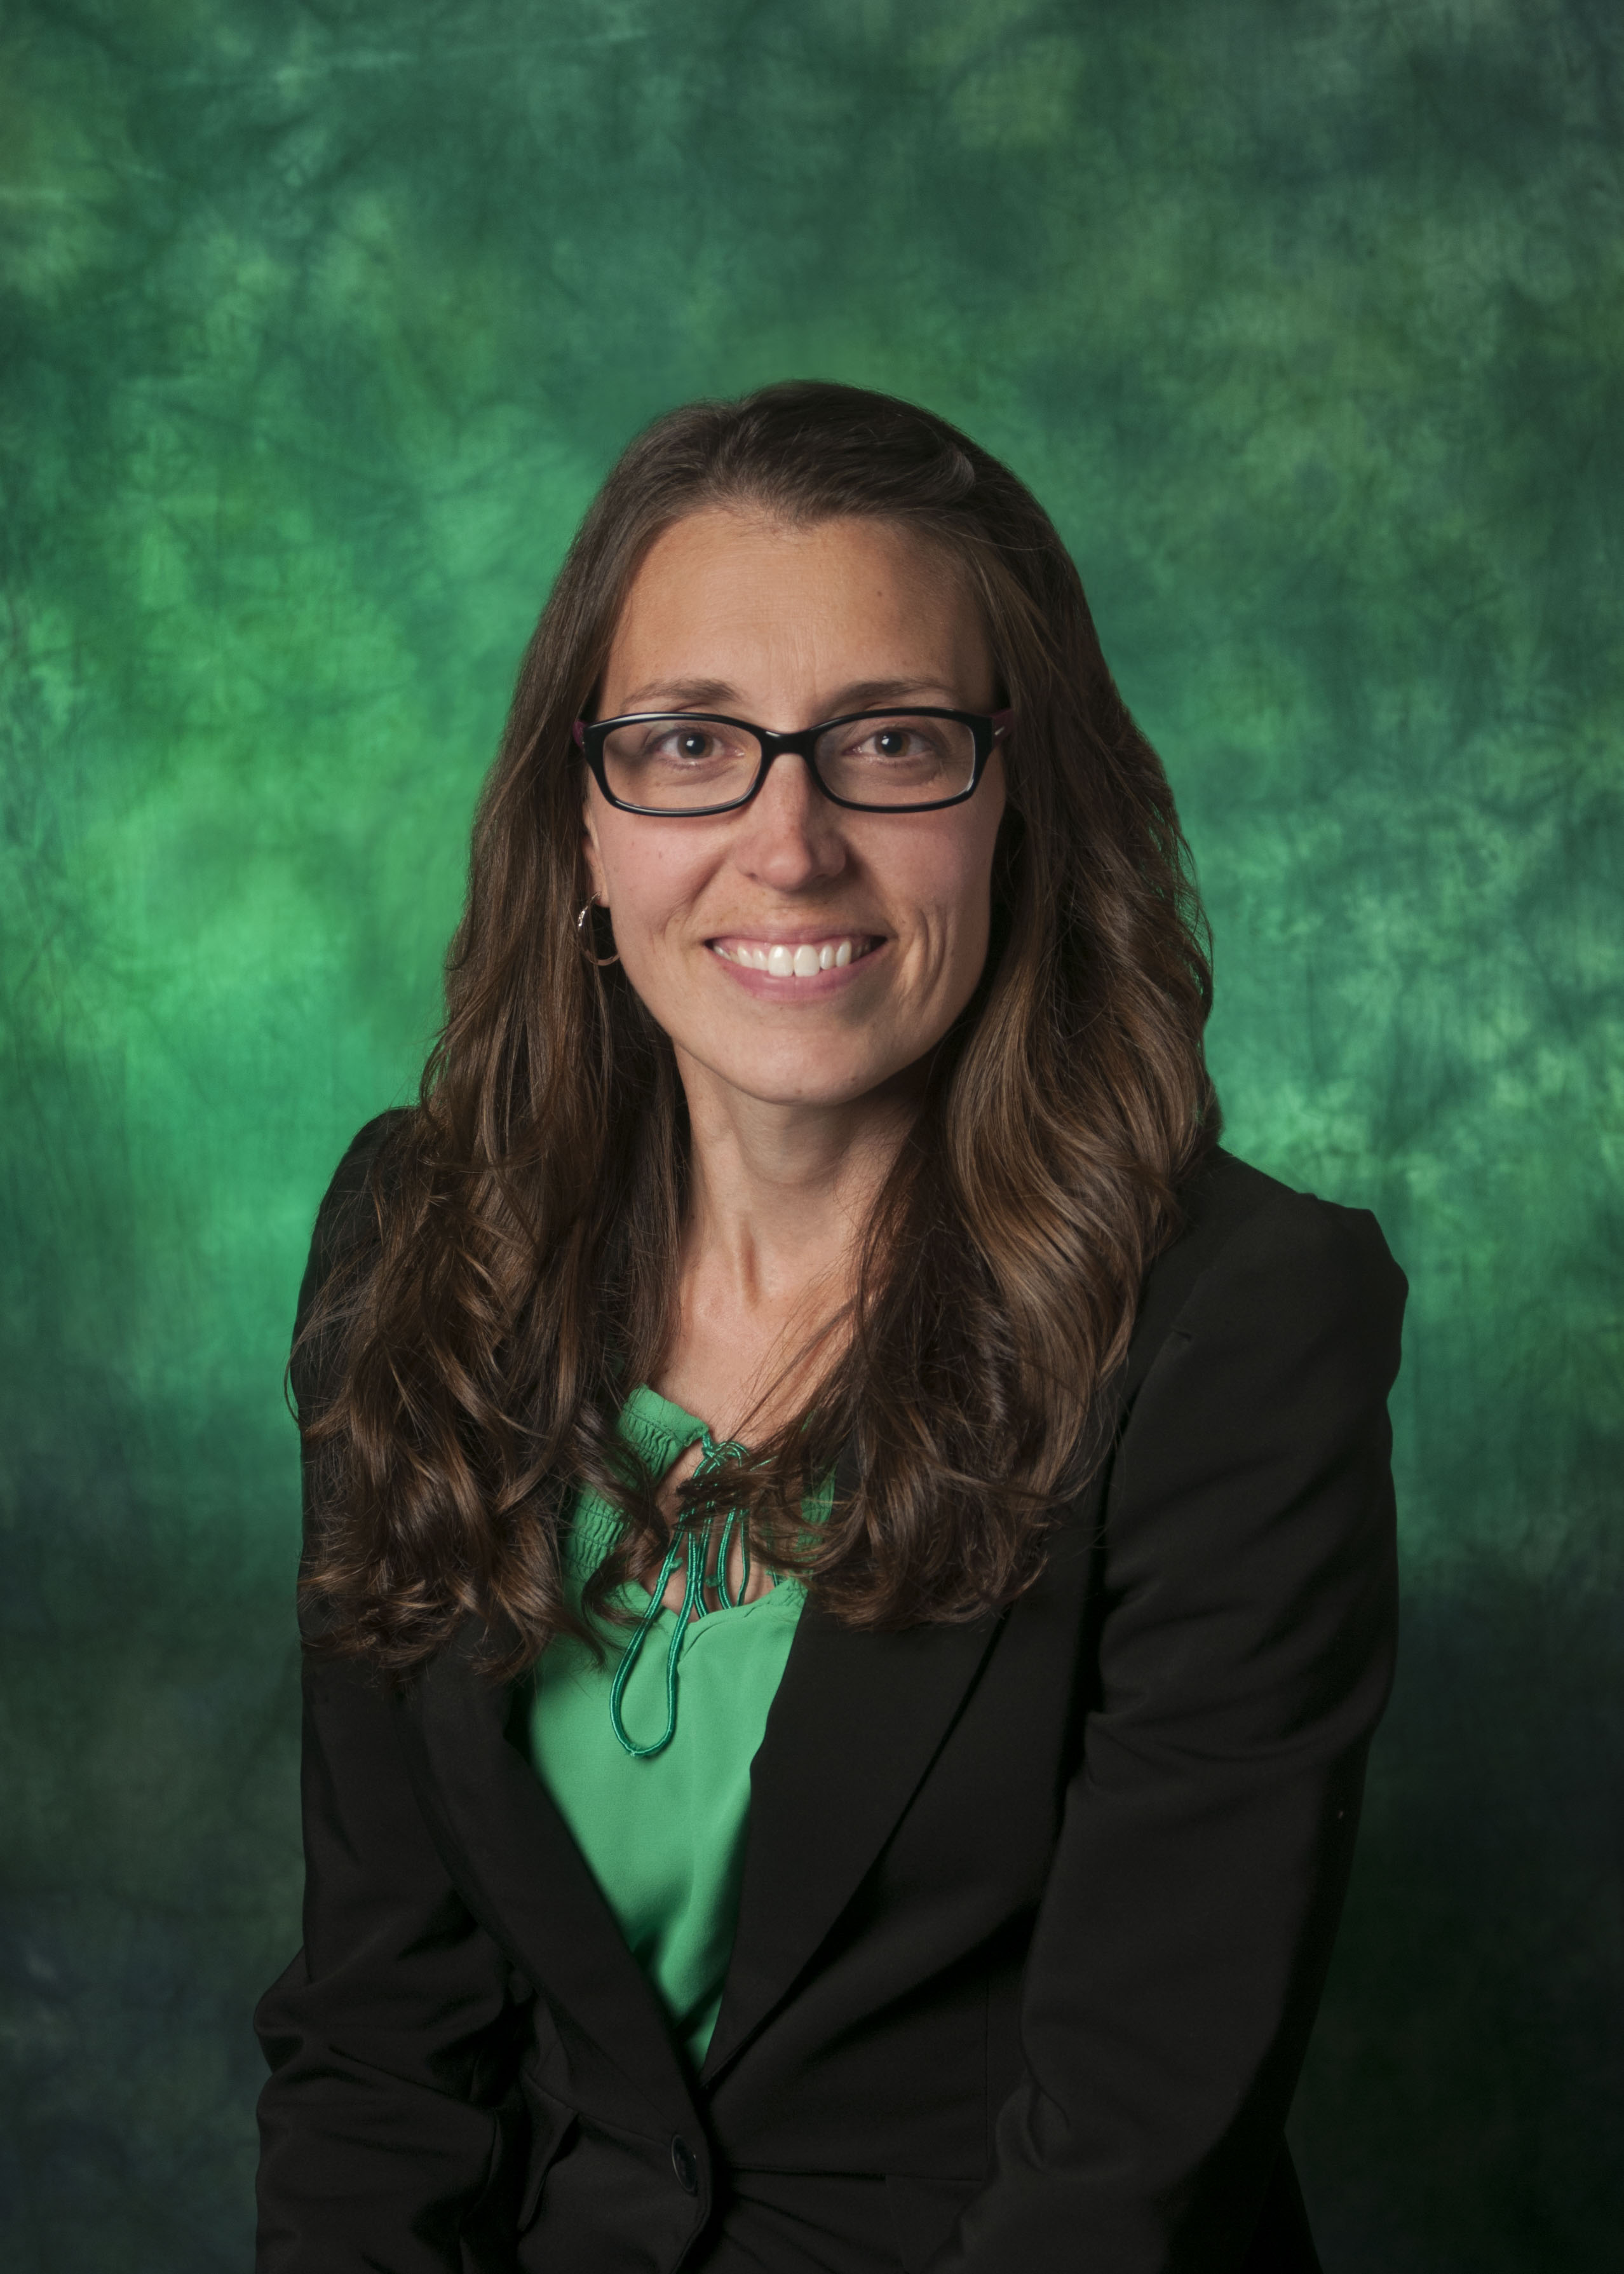 Brandi Renton, UNT's associate vice president for Administrative Services